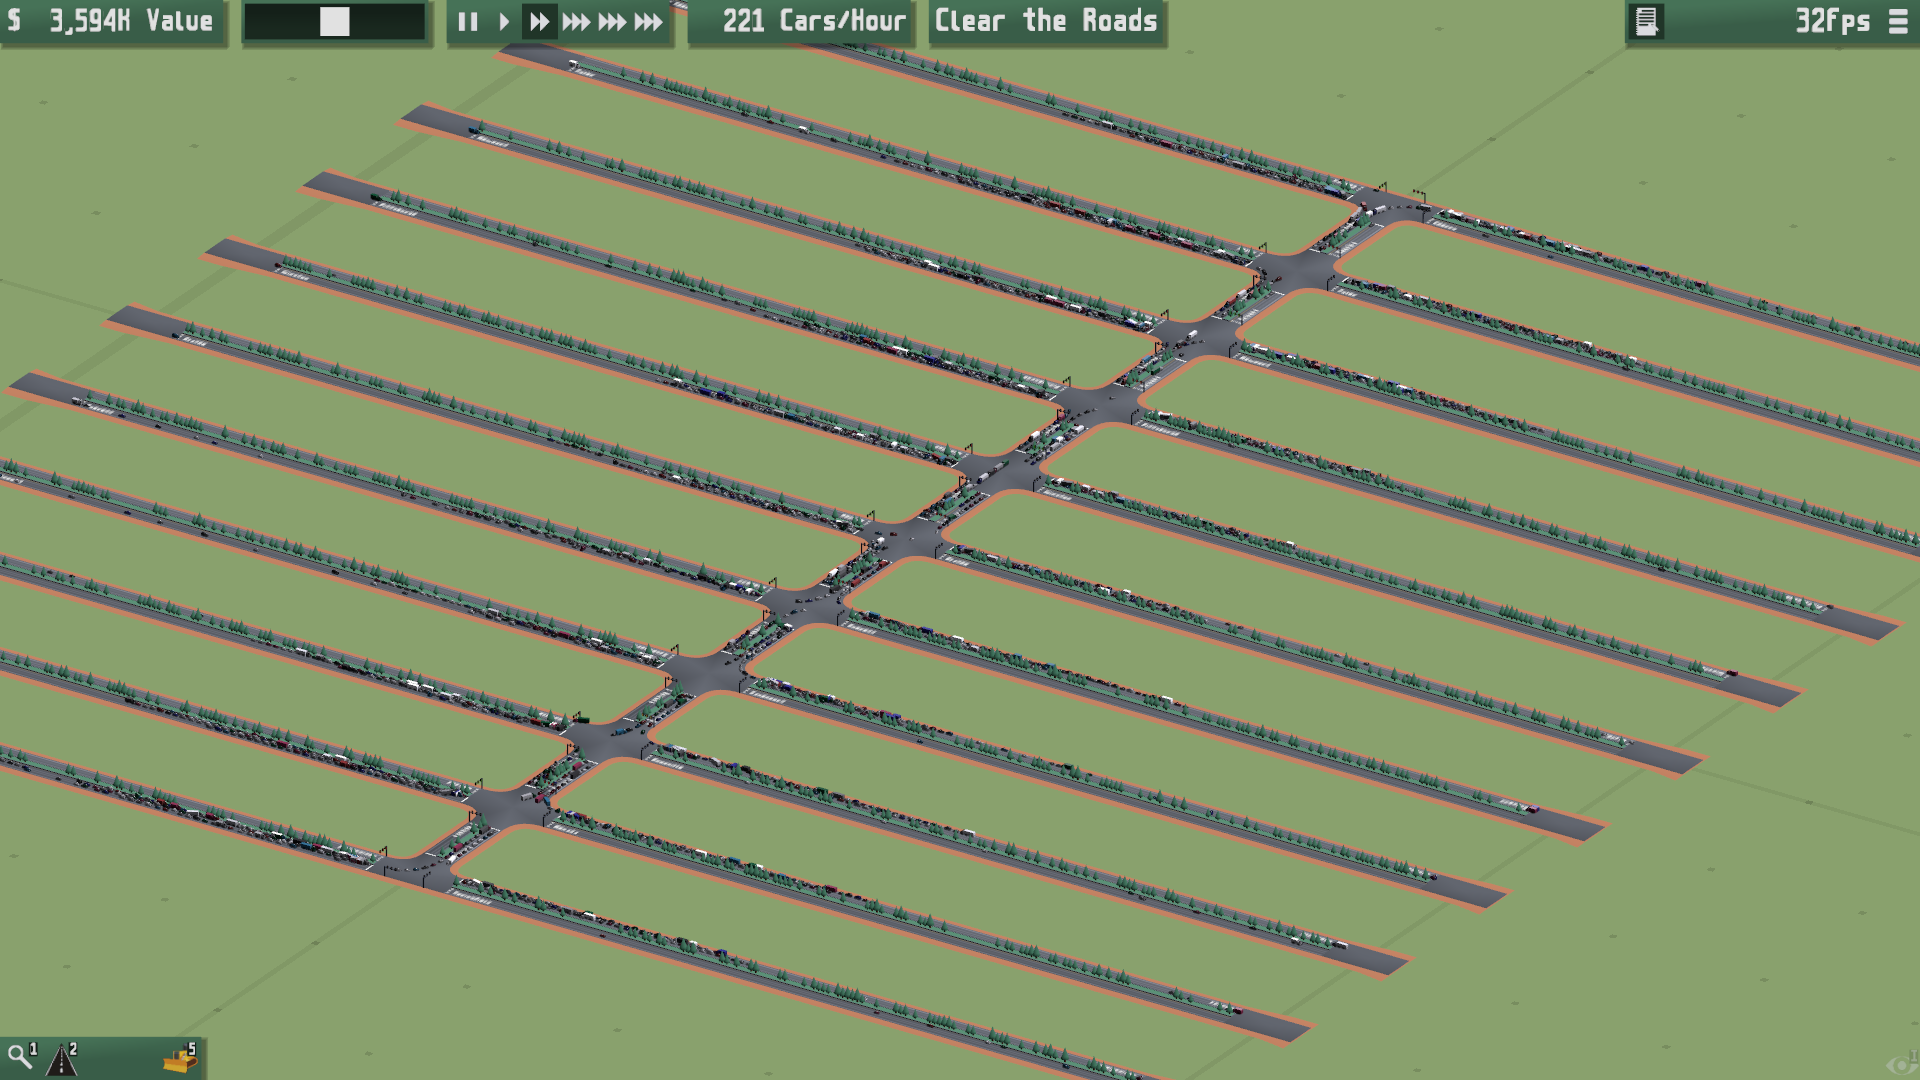 Testing the simulation with thousands of vehicles.